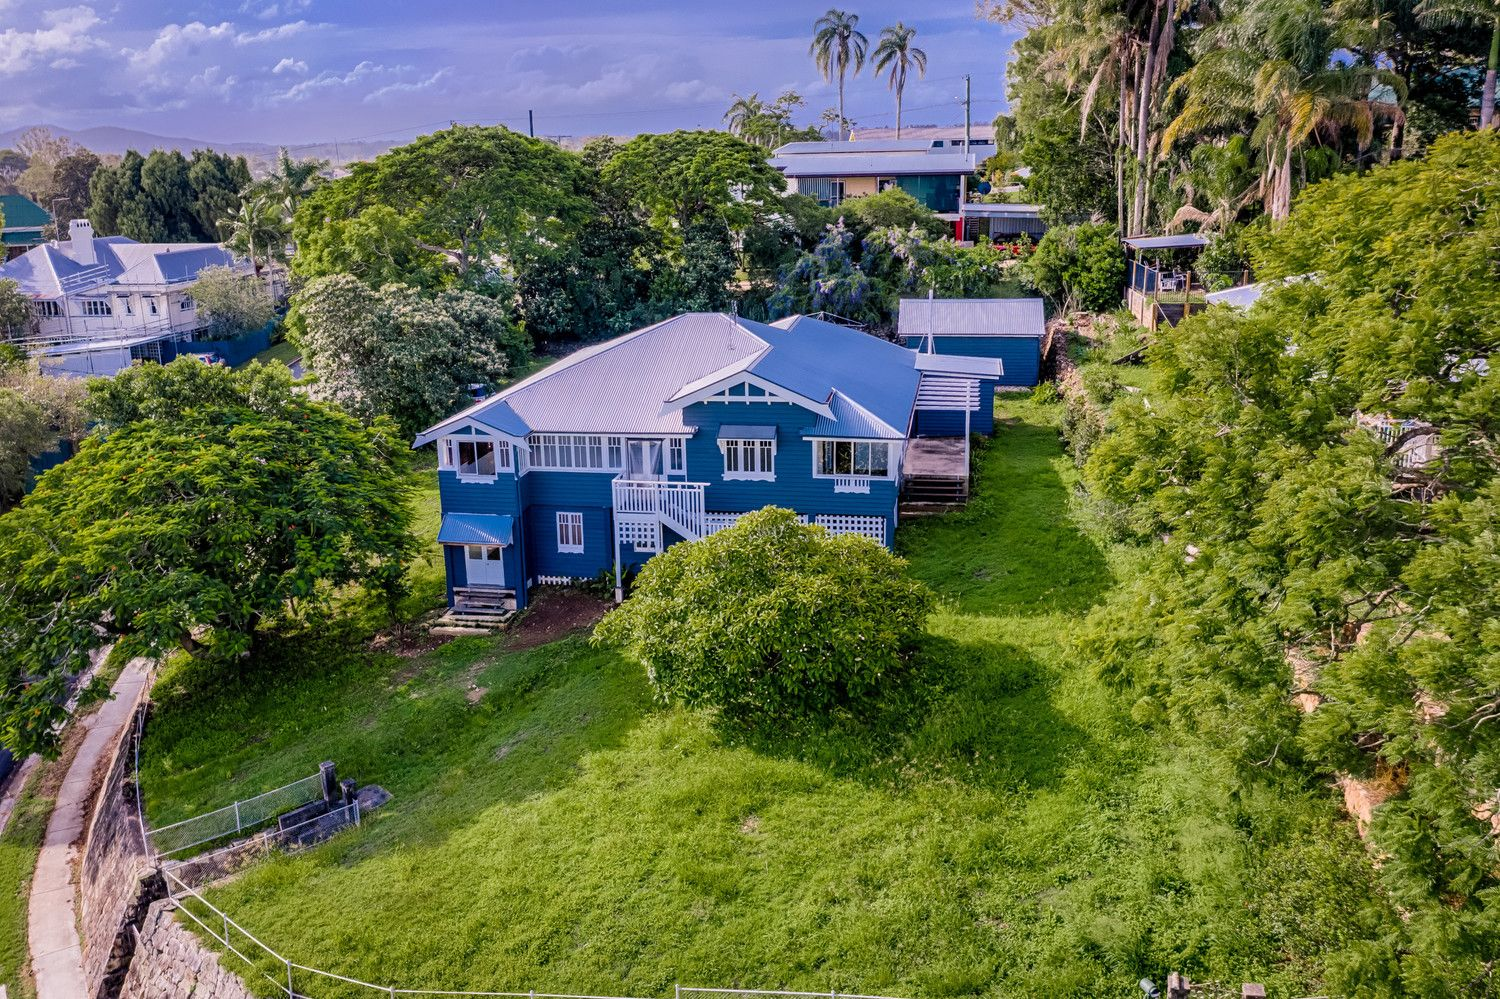 23 Spicer Street, Gympie QLD 4570, Image 0